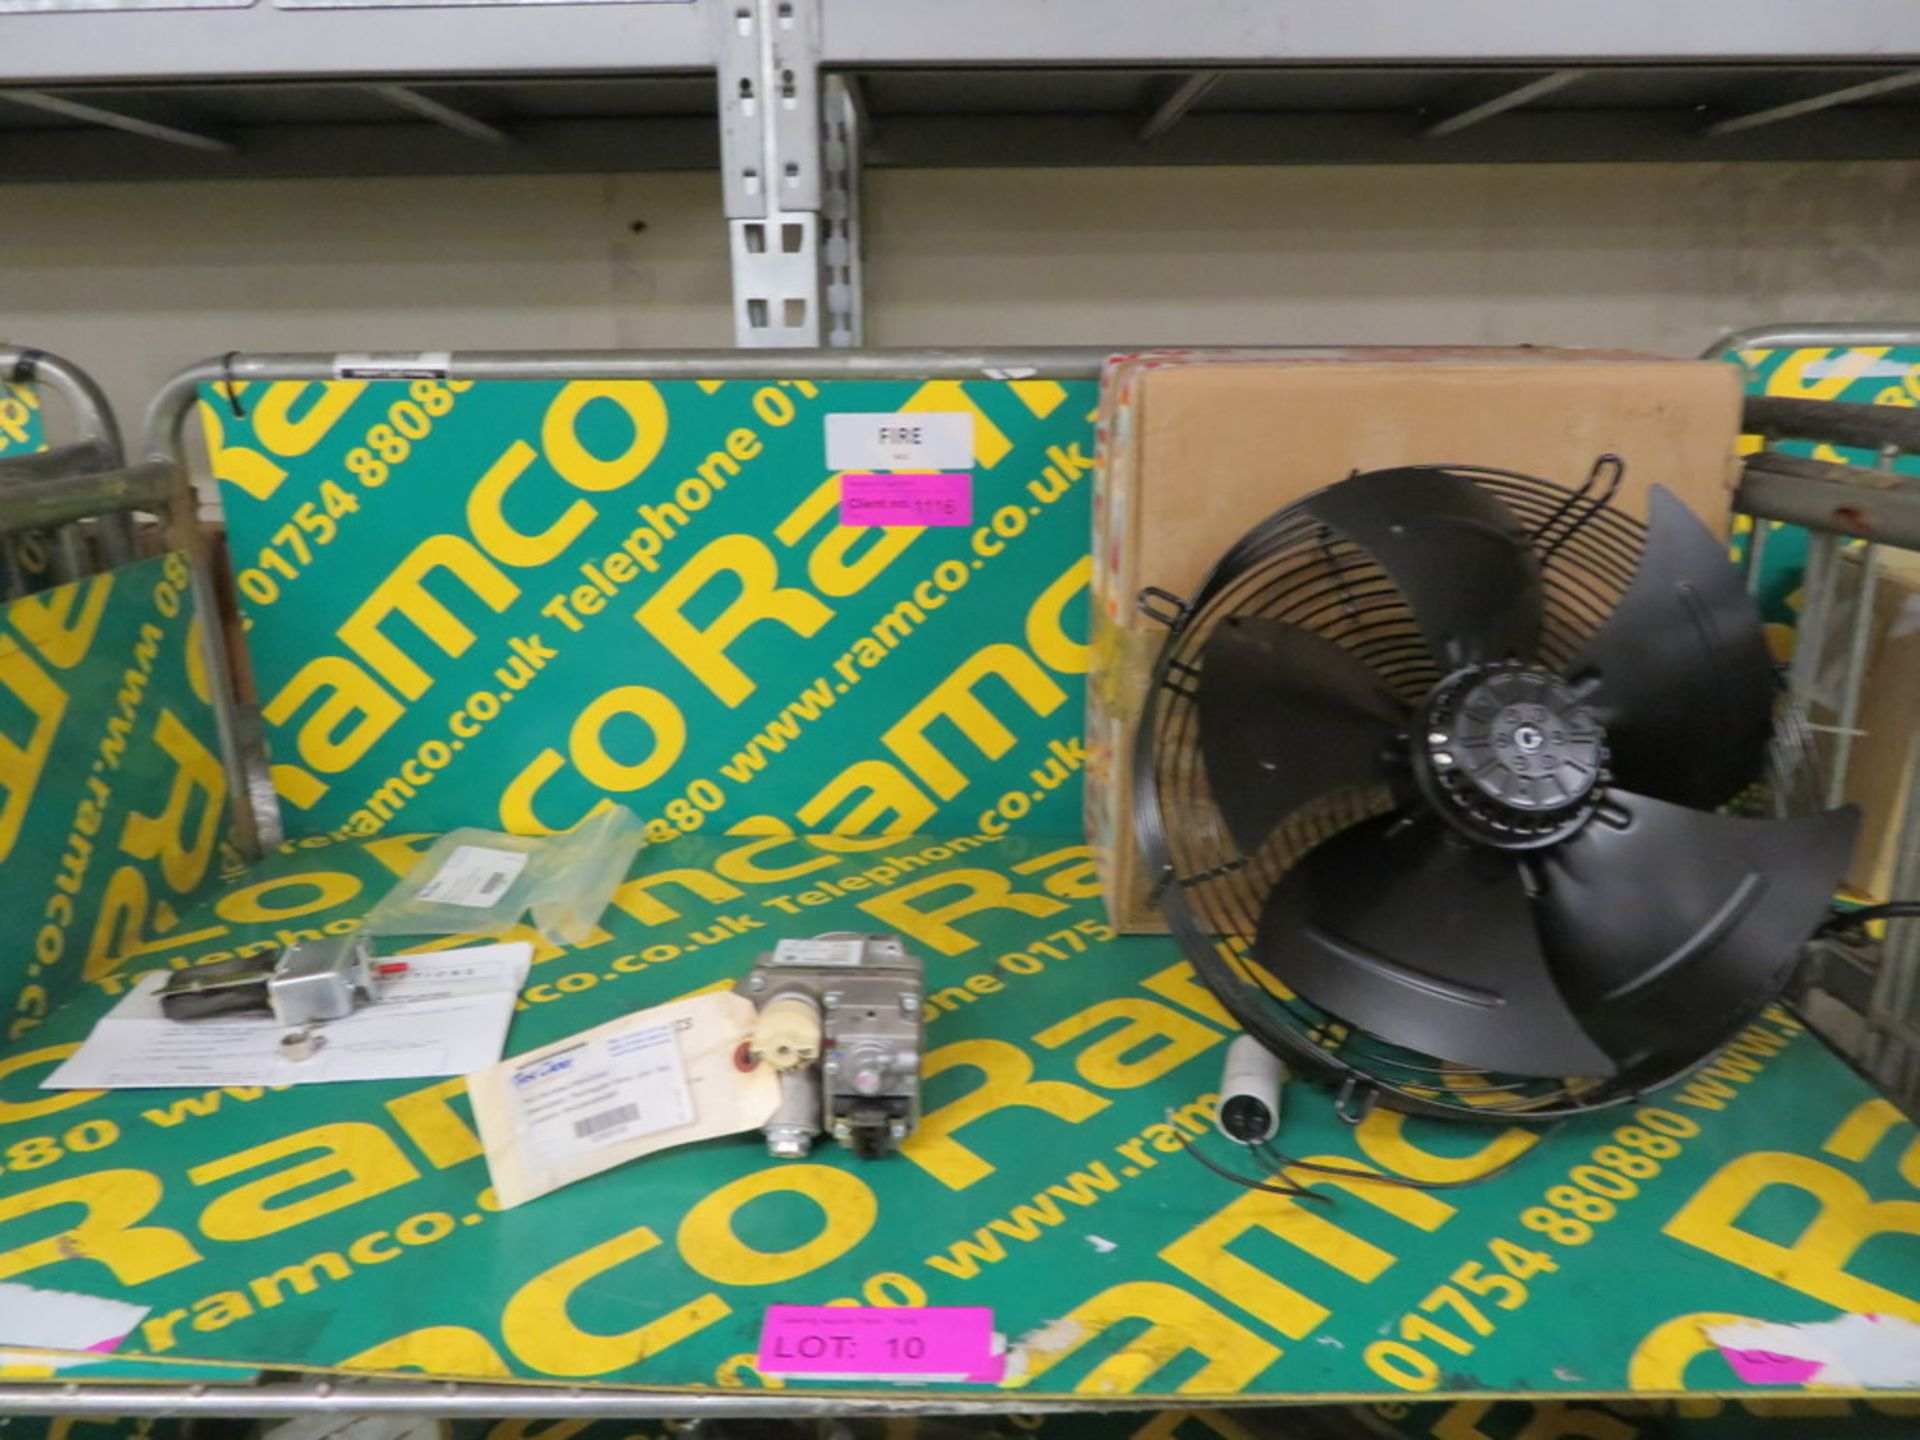 Lot 10 - AXIAL FAN UNIT, 24V THERMOPILE VALVE AND HI LIMIT THERMOSTAT